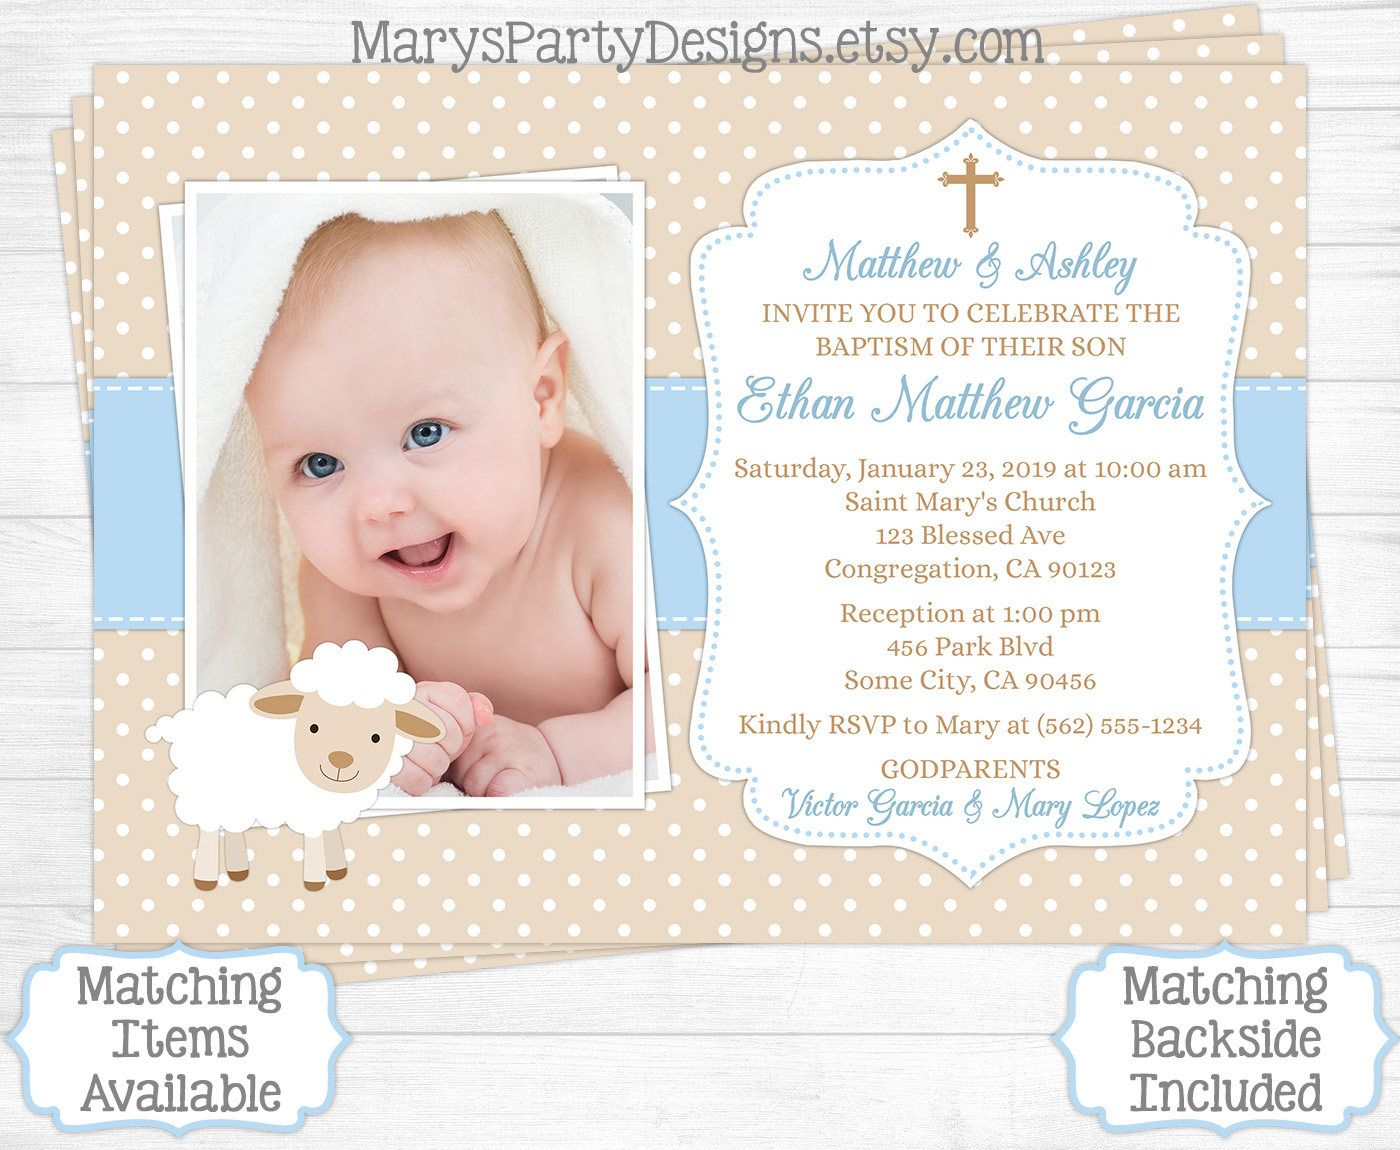 Beautiful lamb baptism invitation boy first 1st birthday christening lamb baptism invitation boy first 1st birthday christening baptismal baby tan beige blue sheep filmwisefo